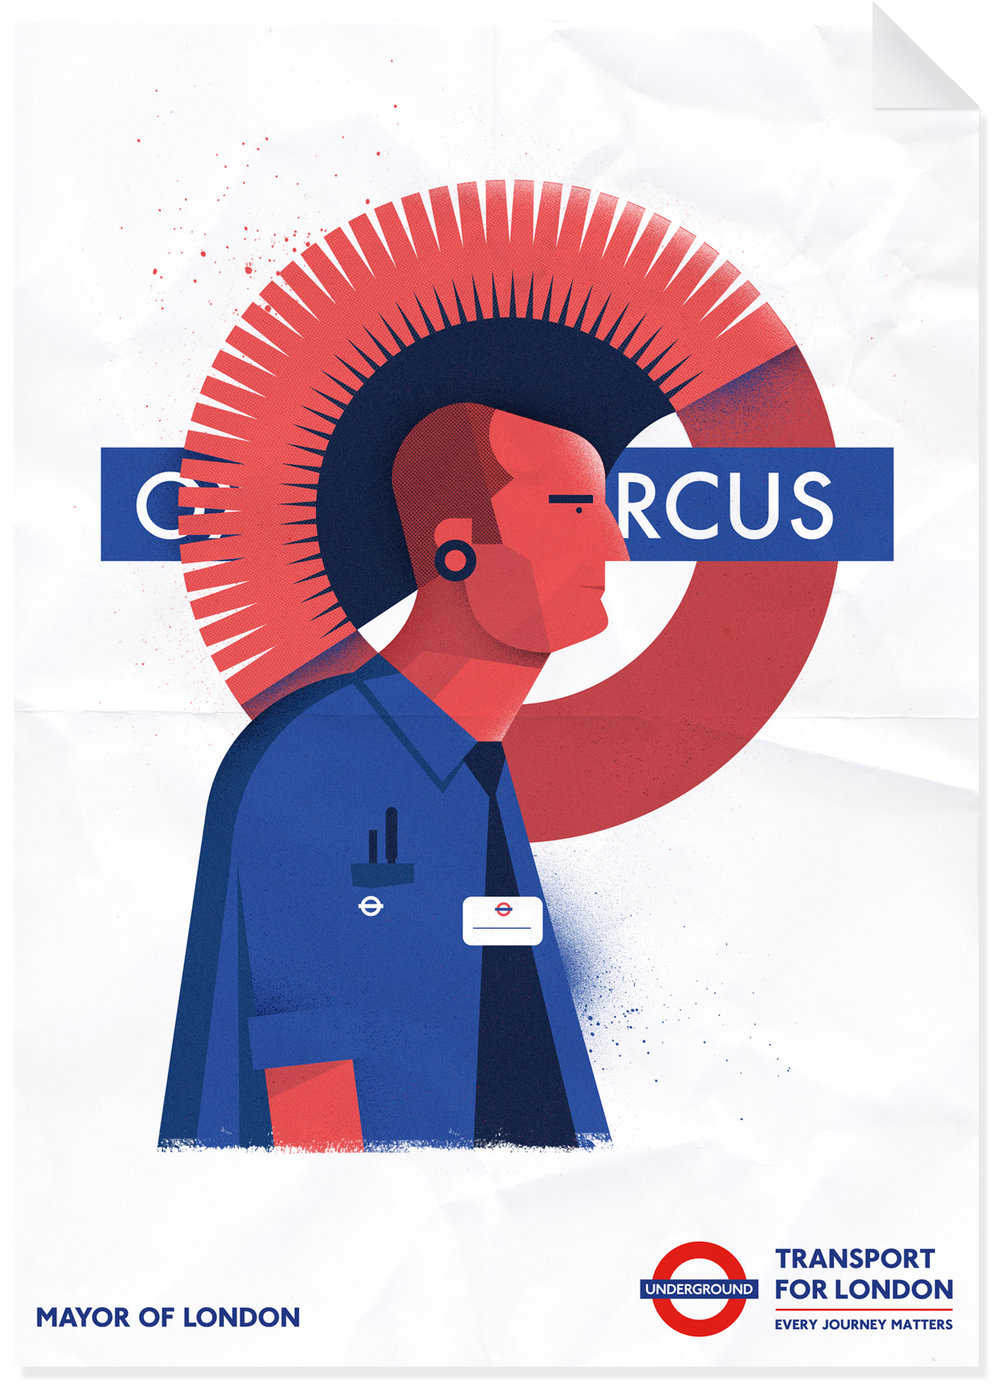 dale edwin murray freelance illustrator personal tfl london underground poster illustration